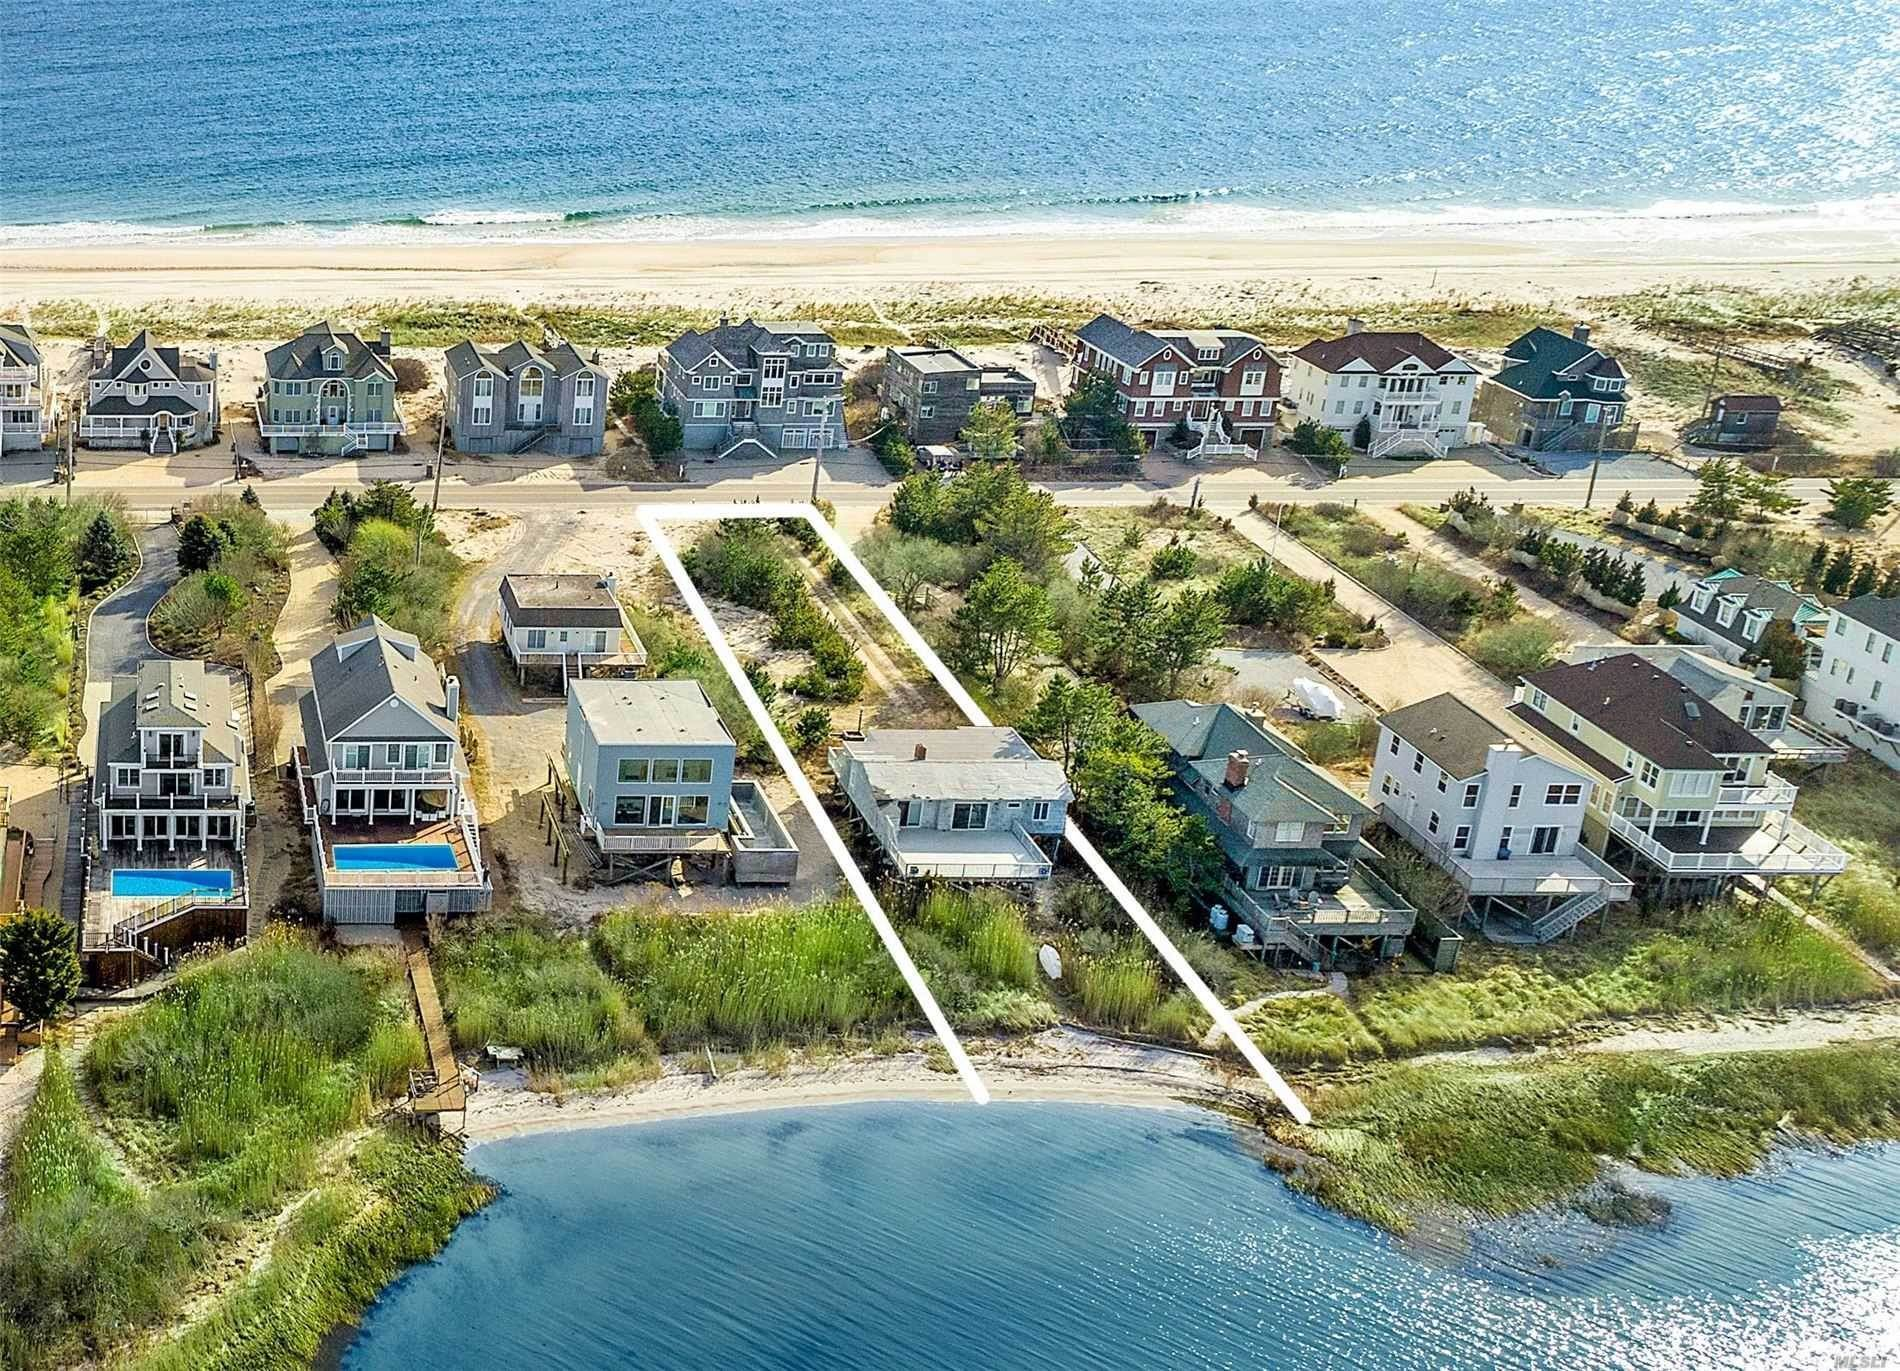 Residential for Sale at 848 Dune Road, Westhampton Dune NY 11978 Westhampton Dunes, New York 11978 United States